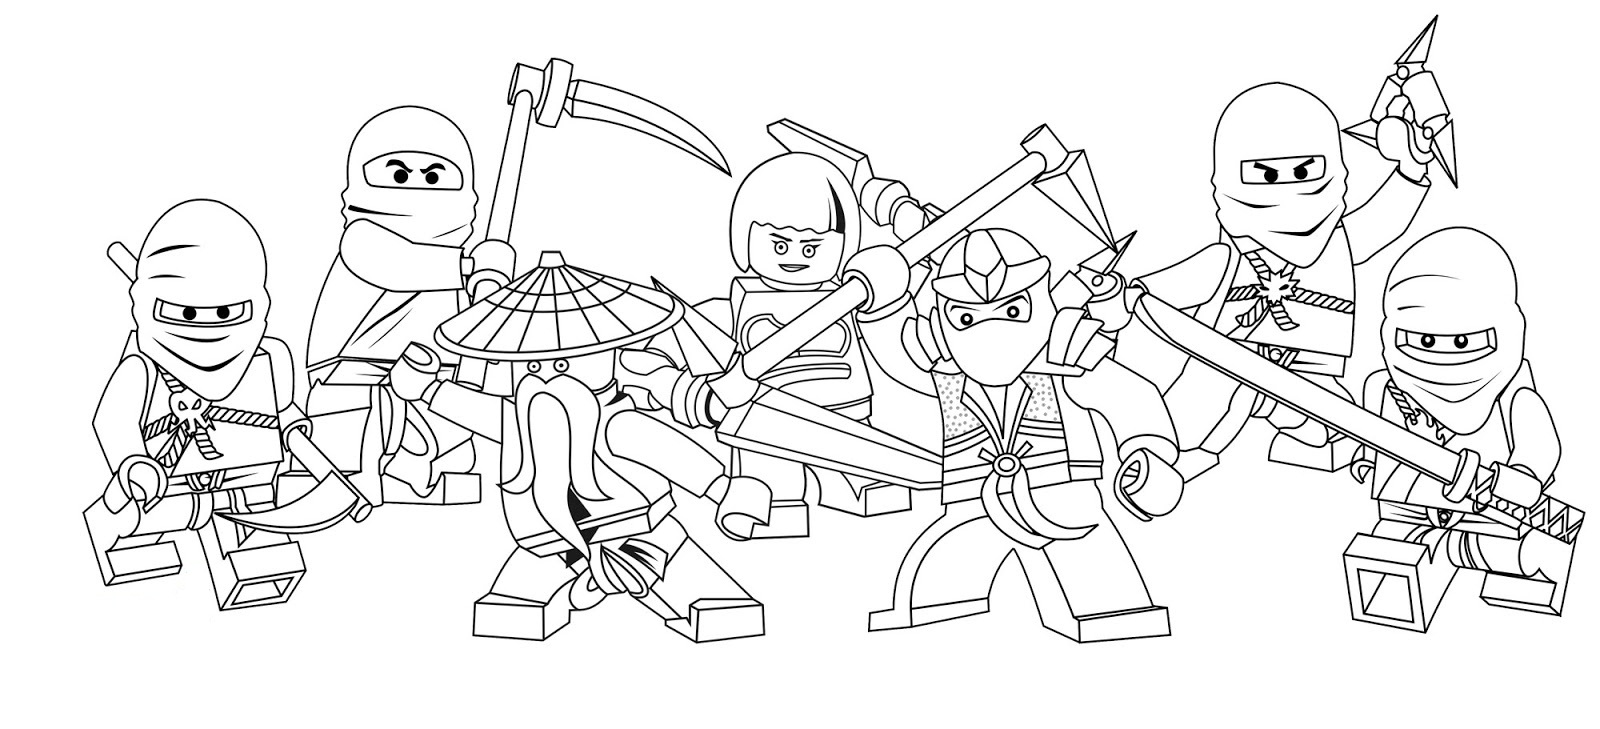 Free printable ninjago coloring pages for kids for Names coloring pages